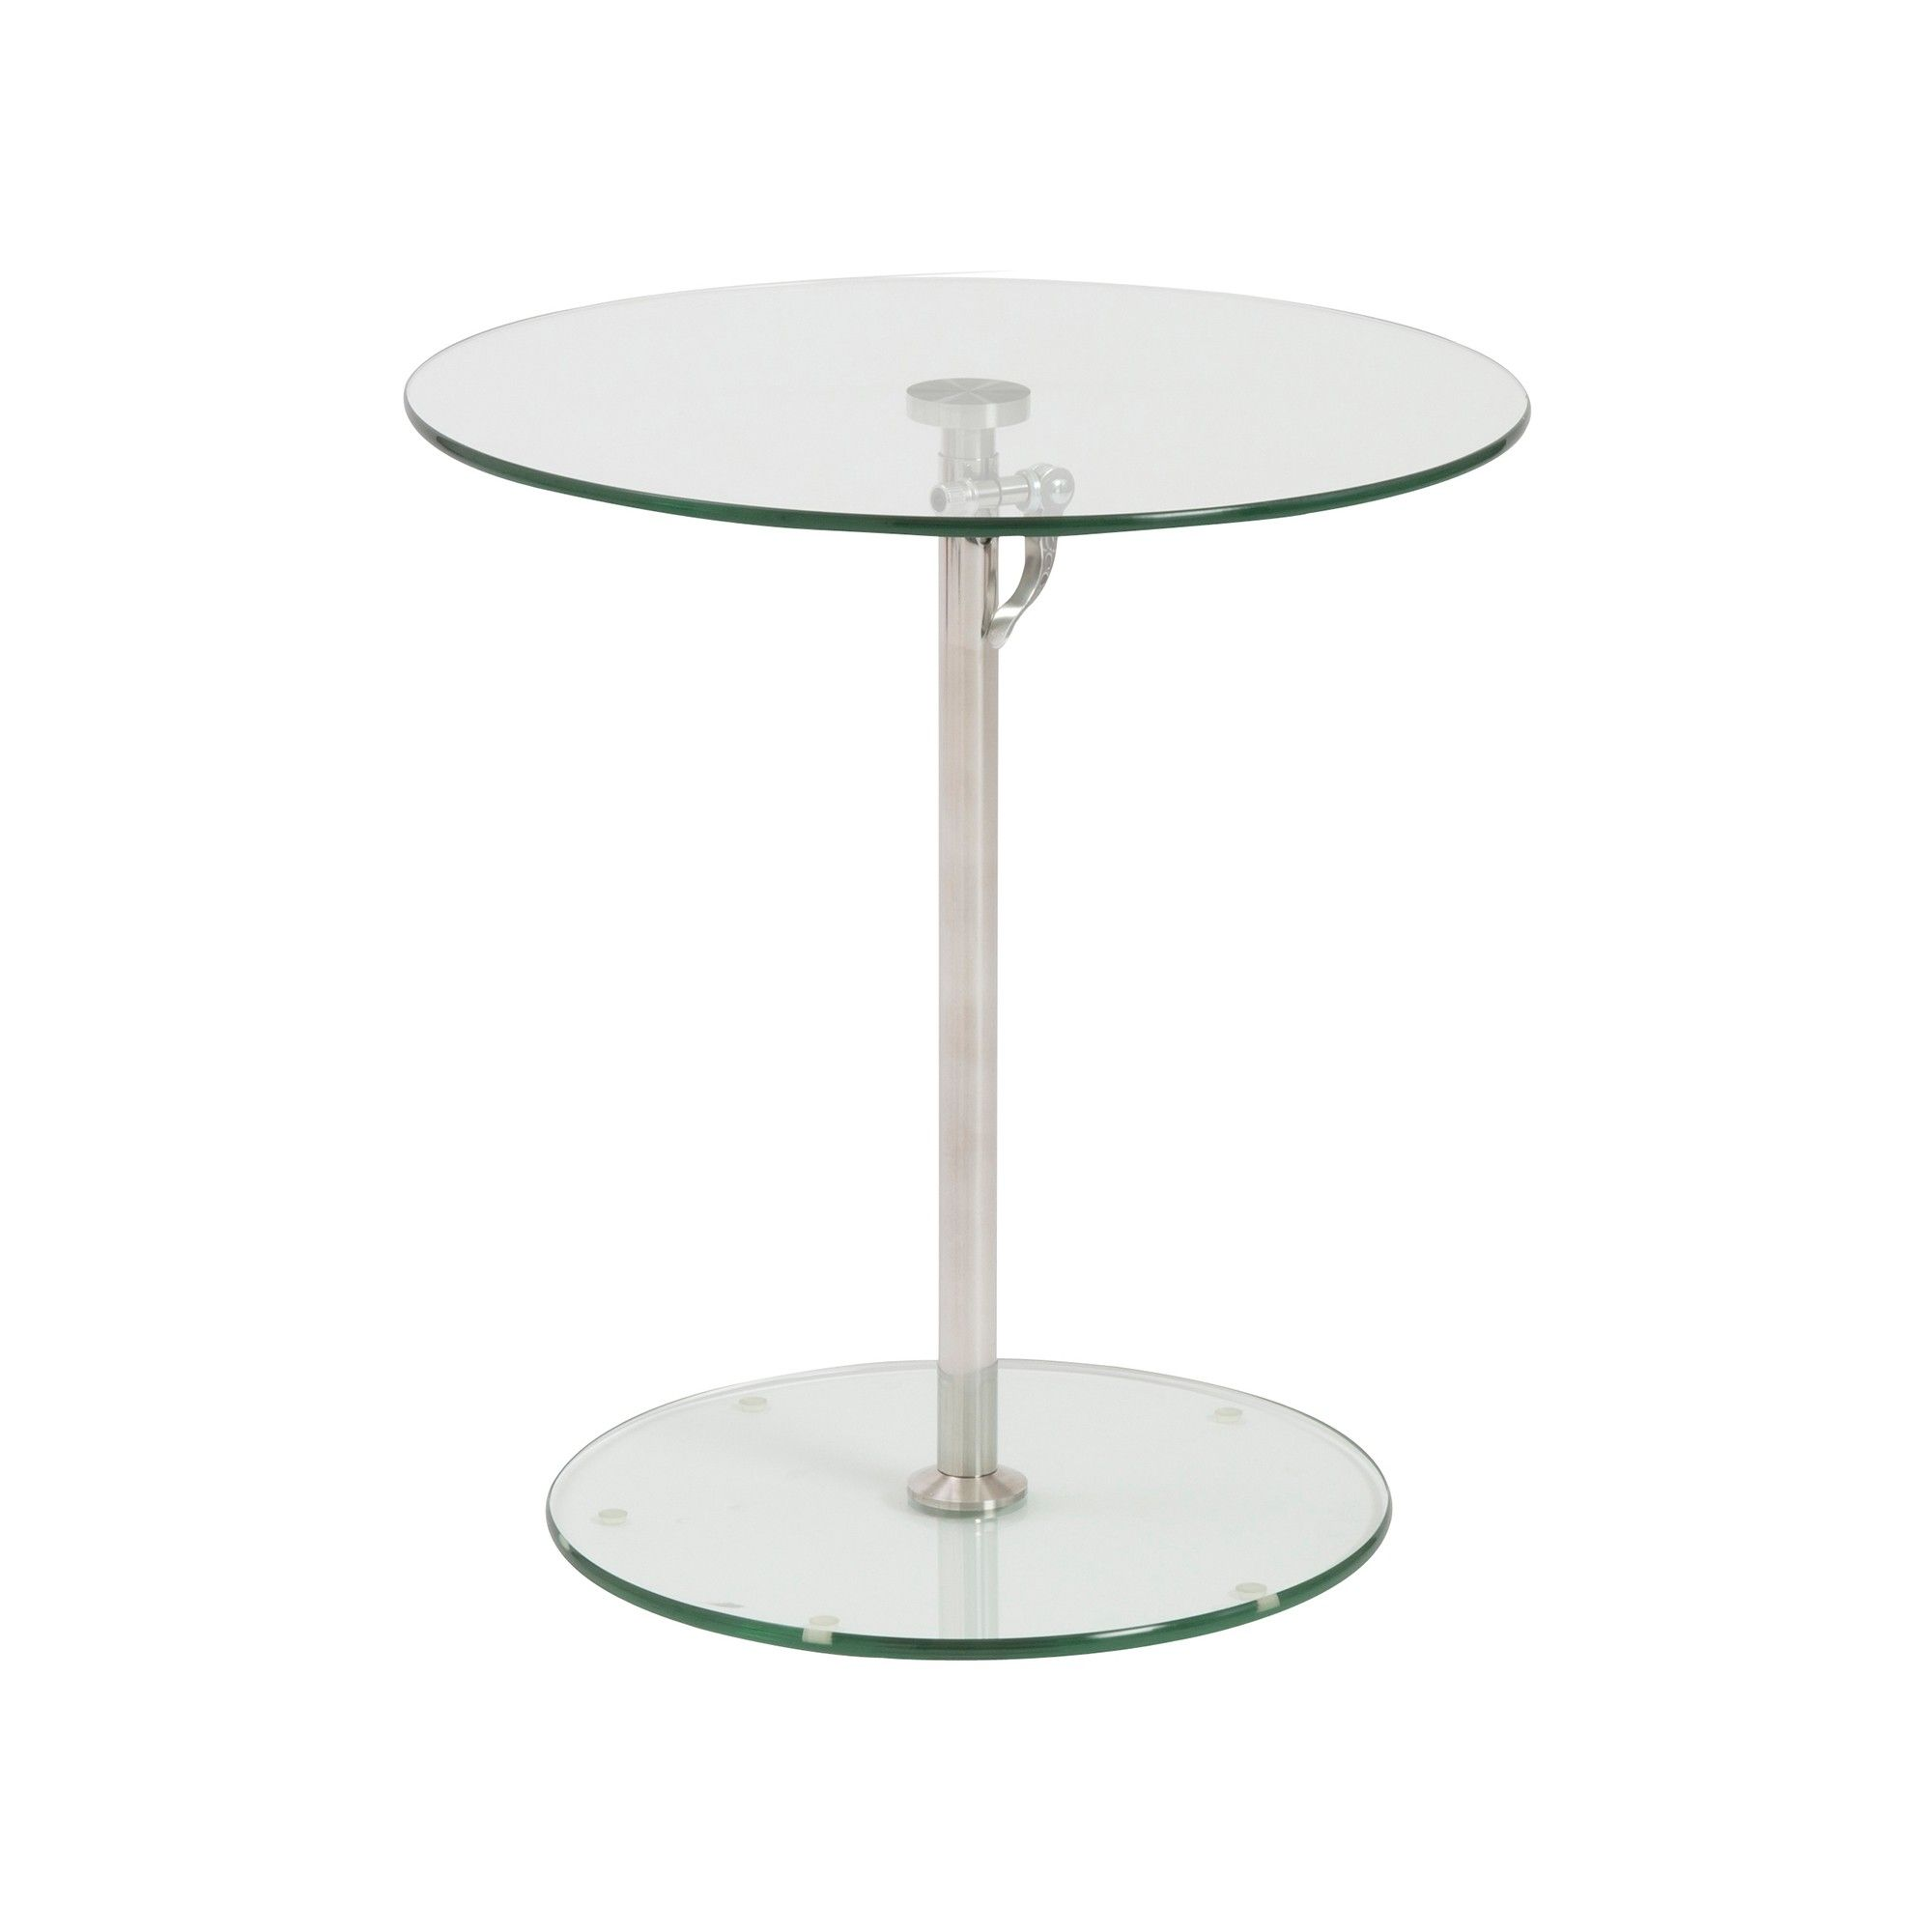 end table clear accent tables products small target glass plant stand grey white coffee ceramic lamp acacia furniture counter dining set ott legs threshold windham chest metal